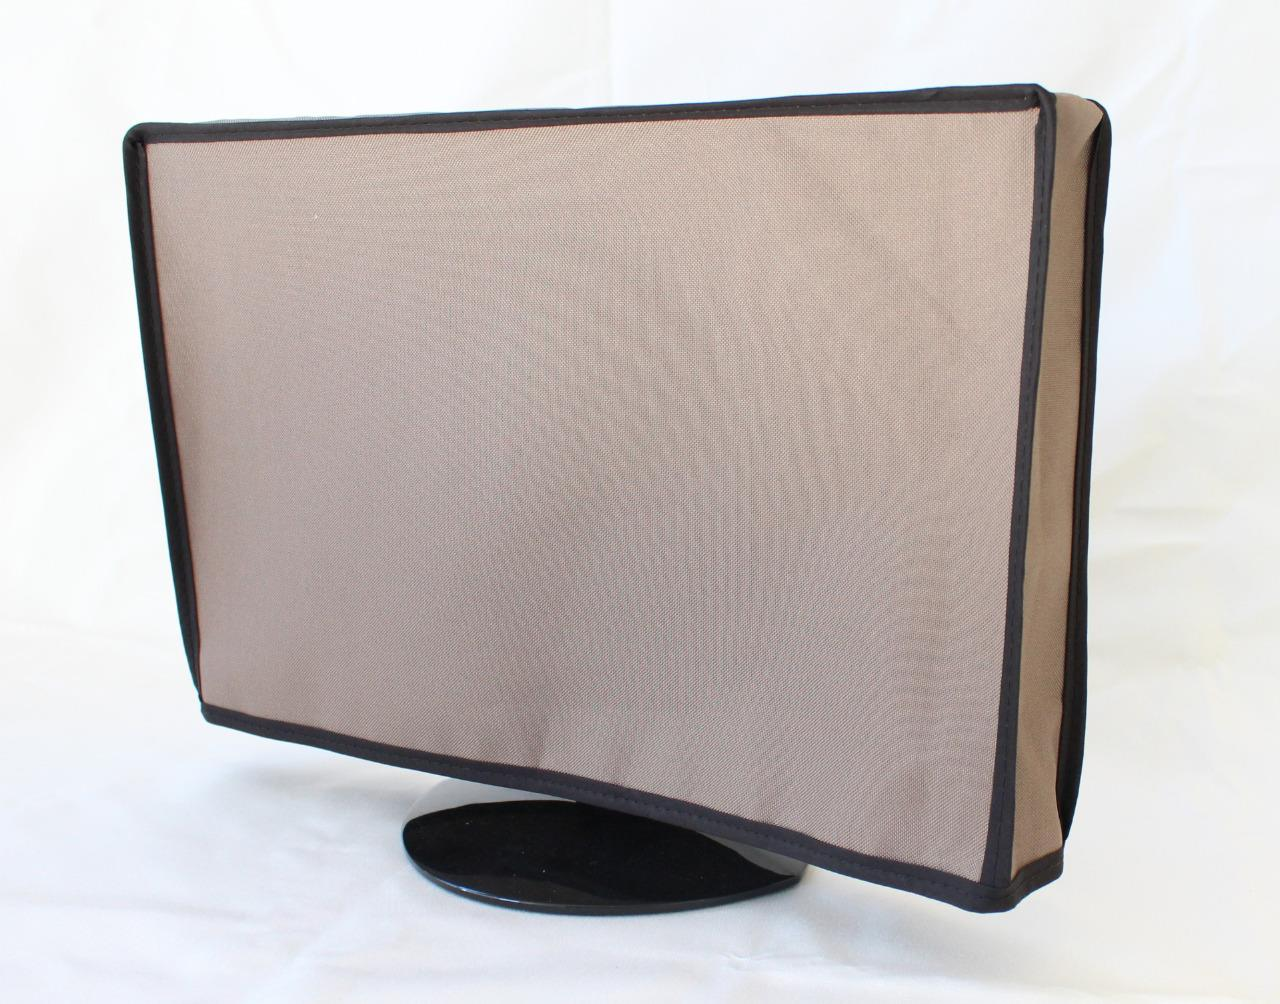 Front Flap Opens Full Bottom Seals TV OUTDOOR TV COVER